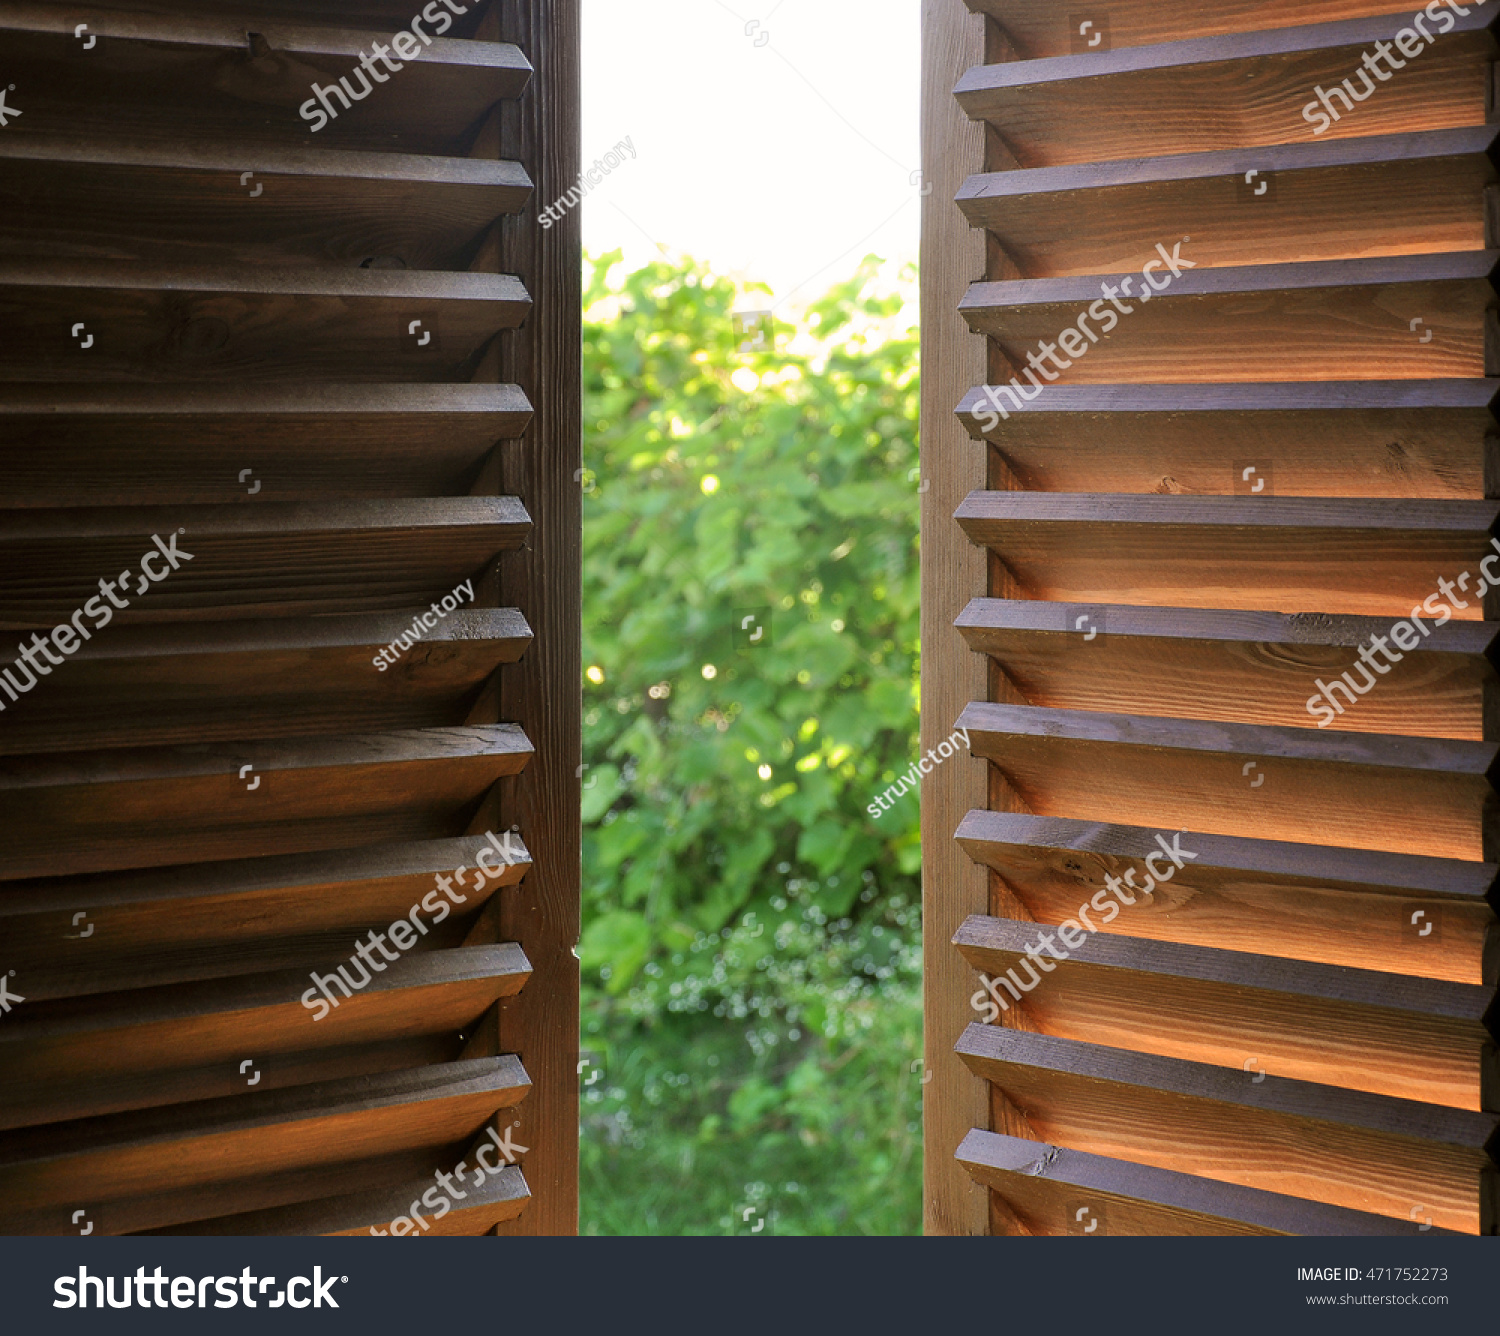 Wood Shutters Closed : Semiopen dark wooden shutters closeup view stock photo